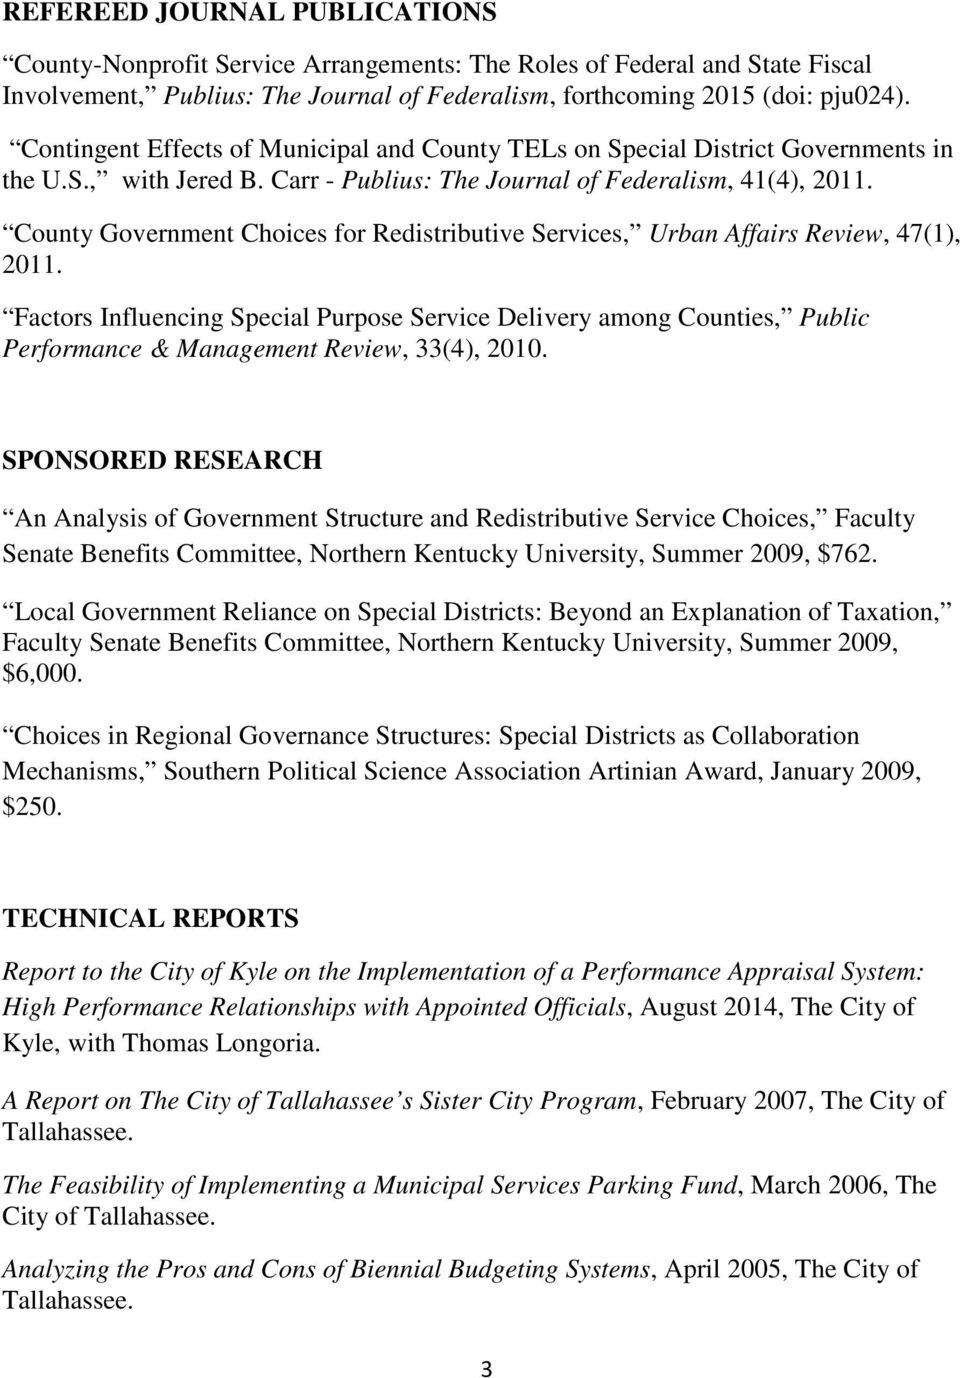 County Government Choices for Redistributive Services, Urban Affairs Review, 47(1), 2011.